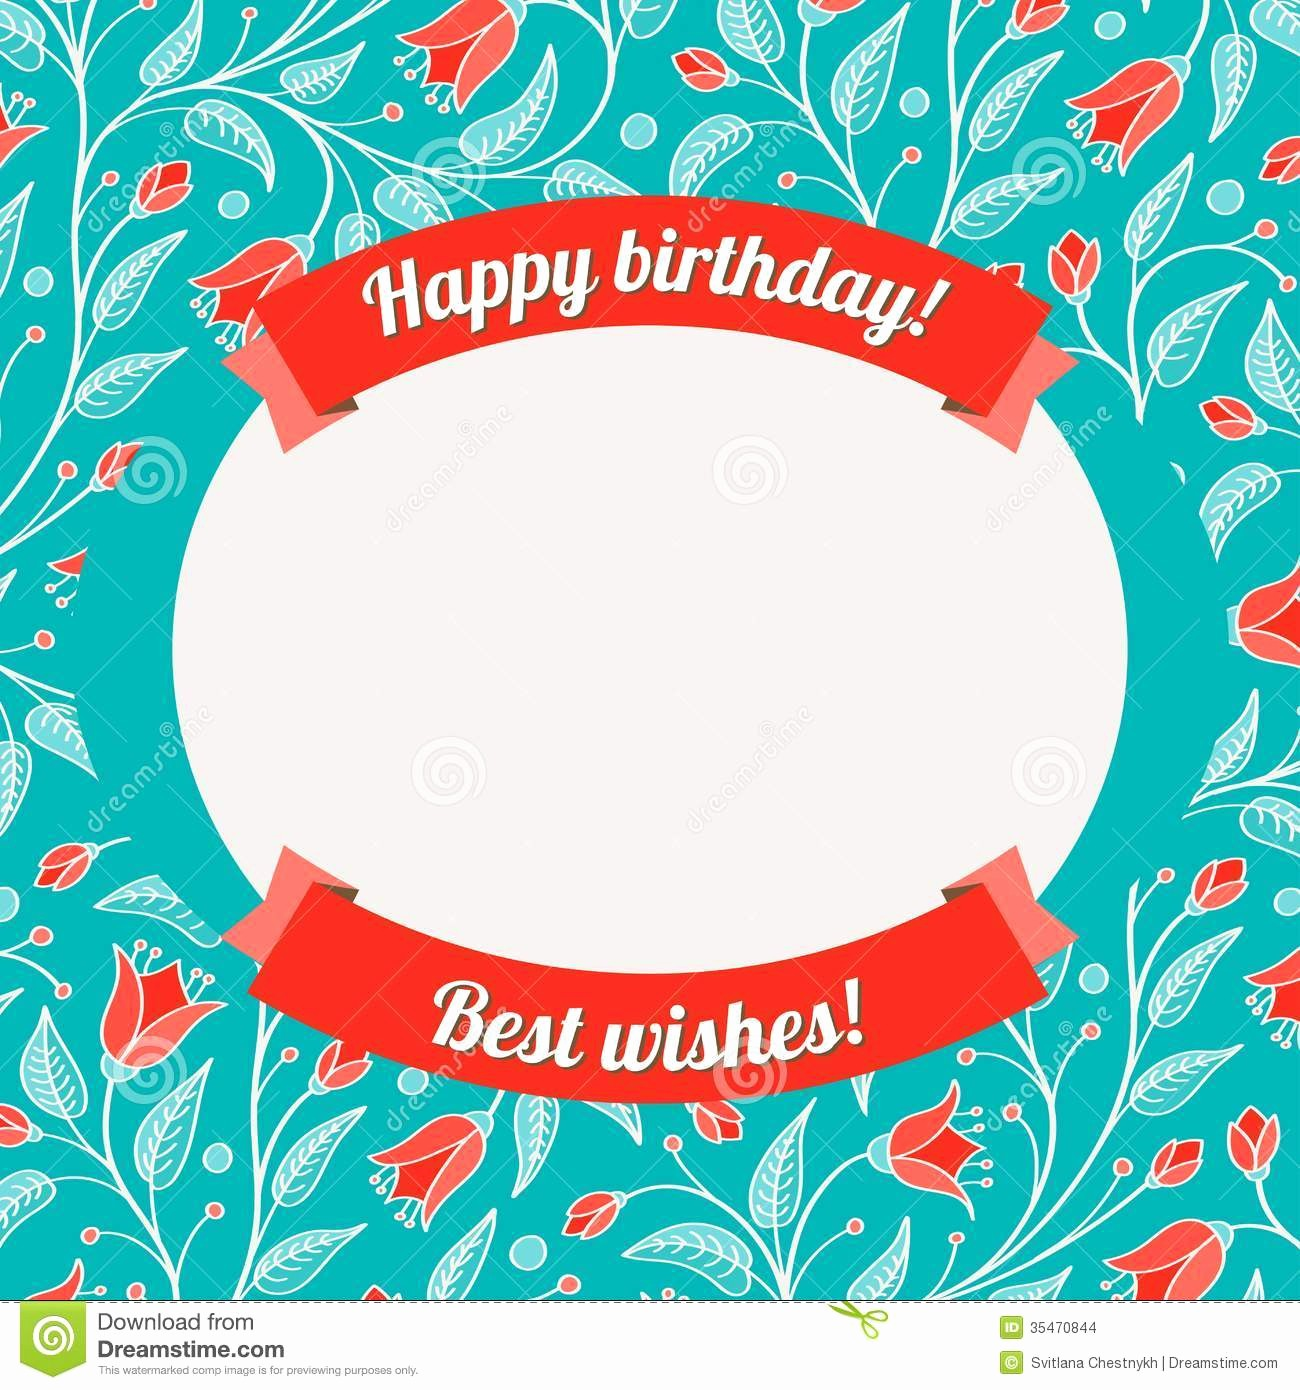 Birthday Party Invitation Card Template Inspirational Birthday Card Template